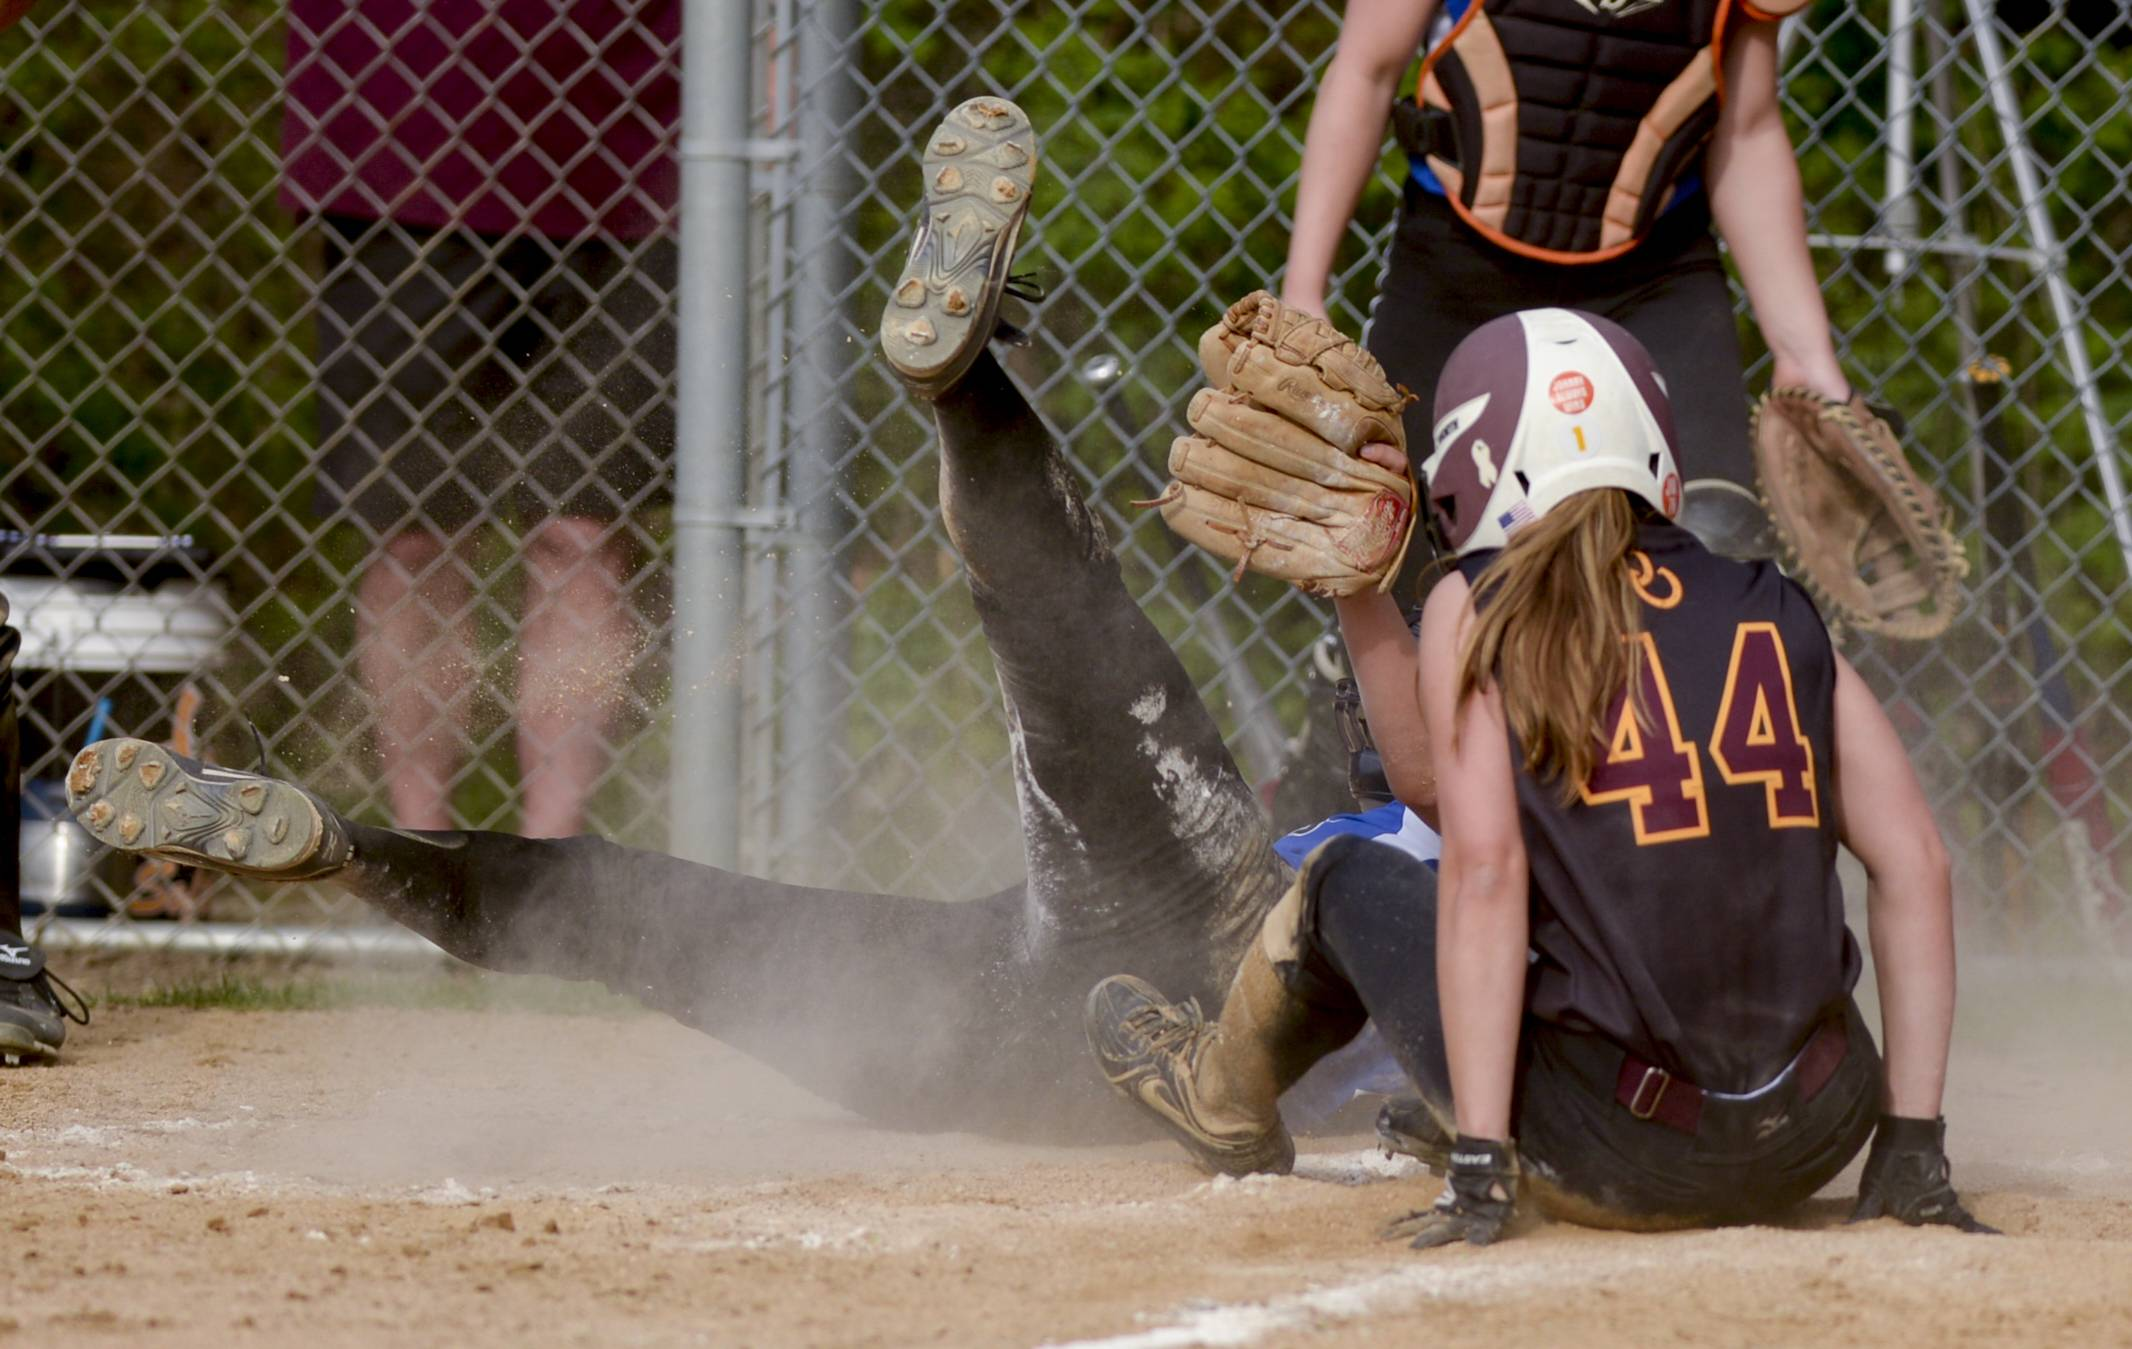 St. Francis' pitcher Maggie Remus hits the ground while covering home plate as Montini's Lauren Trojnar scores during softball action in Wheaton Thursday.